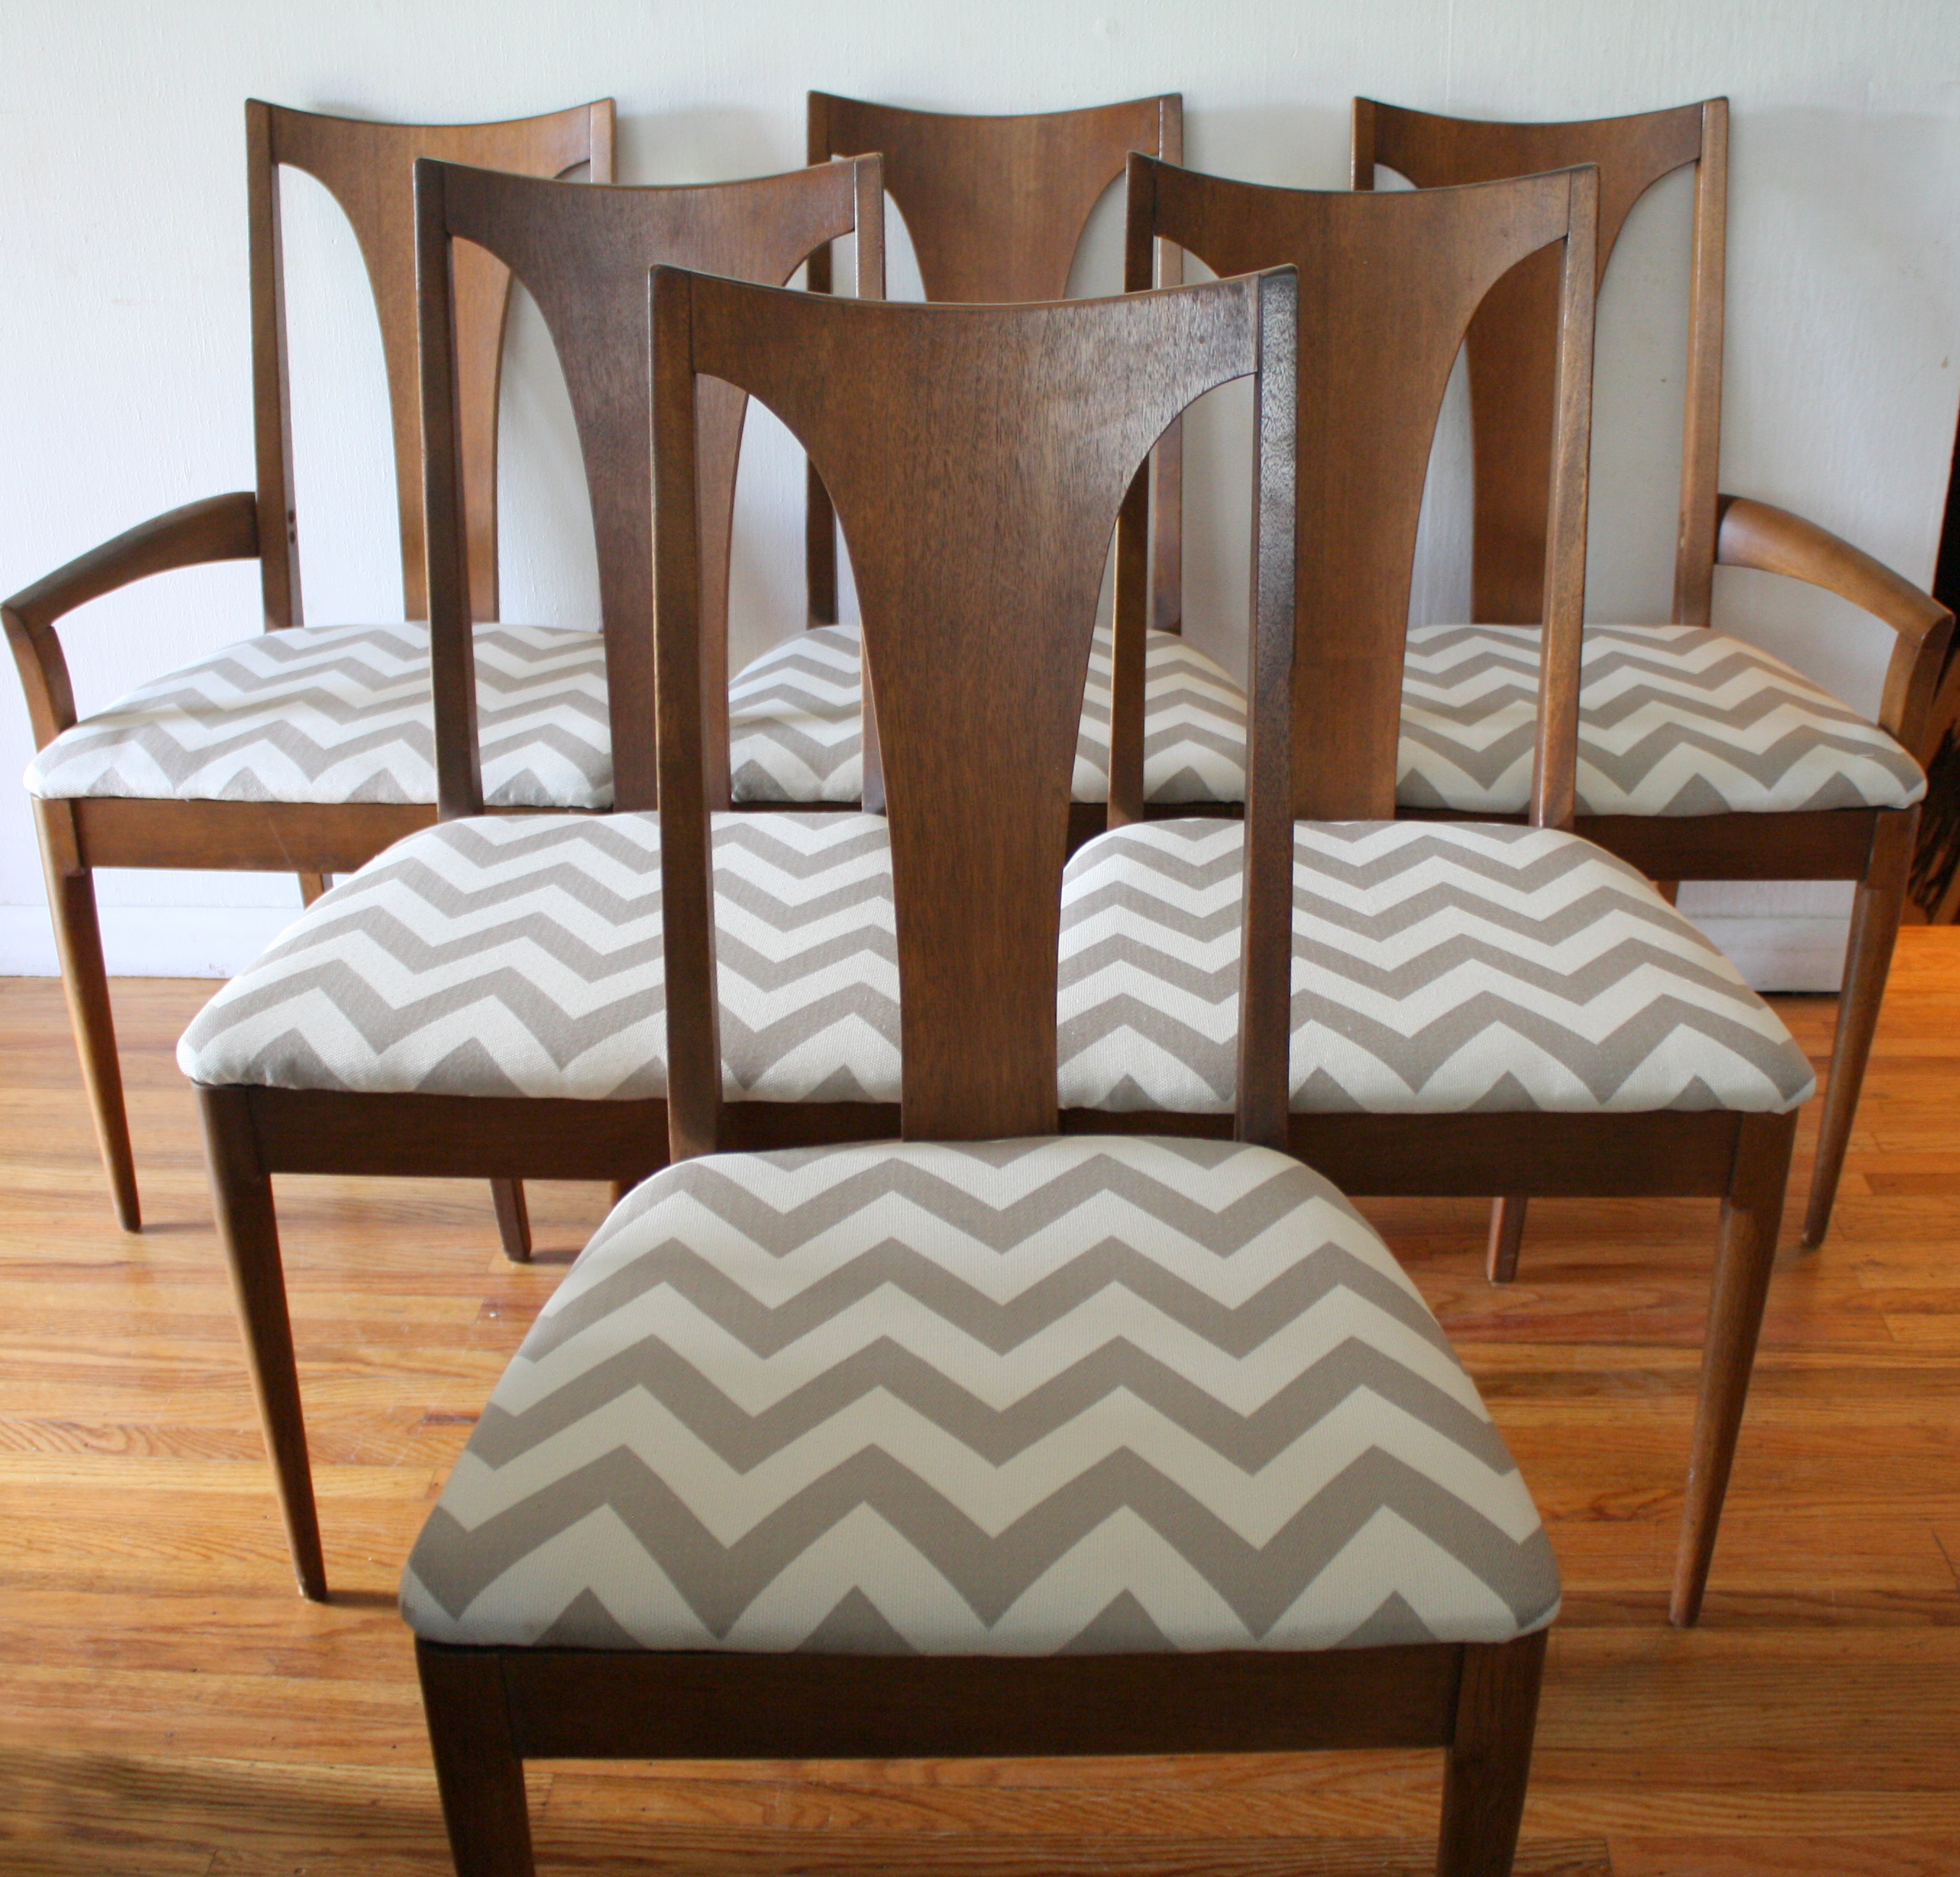 Midcentury Chairs Mid Century Modern Dining Chair Set From The Broyhill